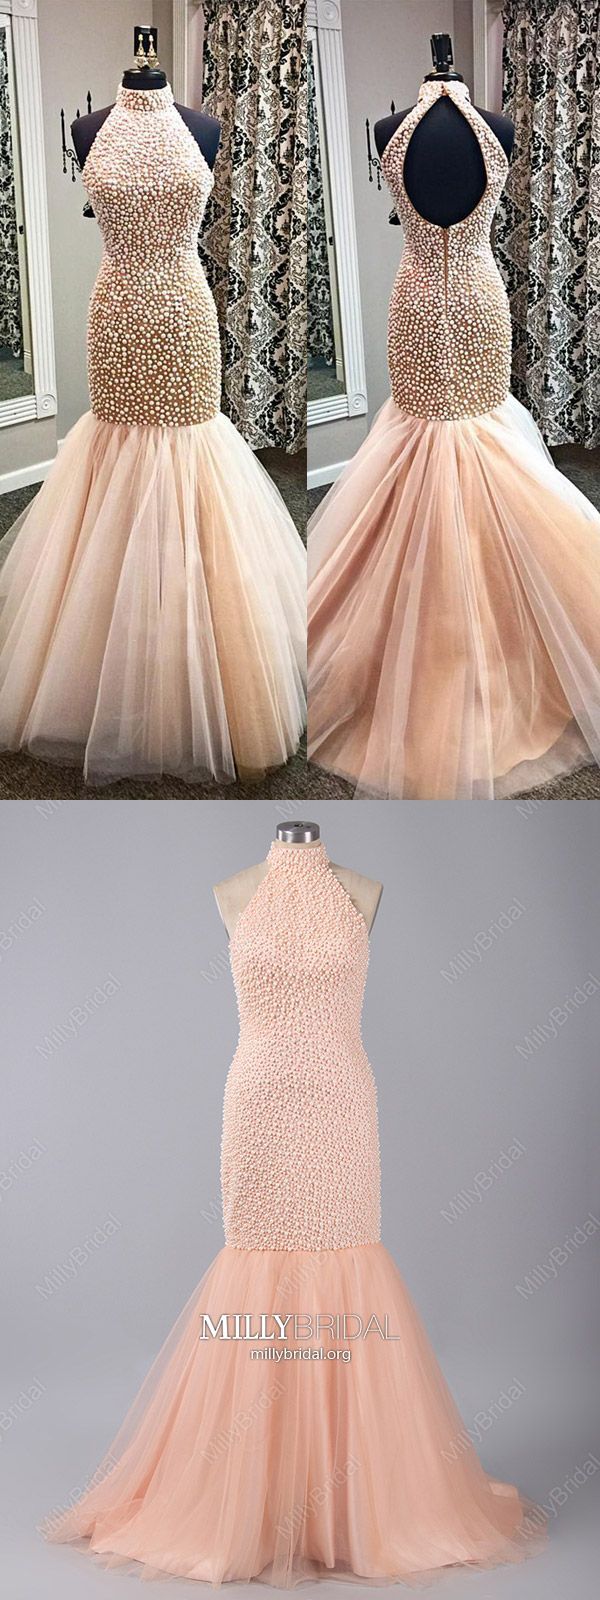 Pearl pink prom dresses longsparkly formal evening dresses open